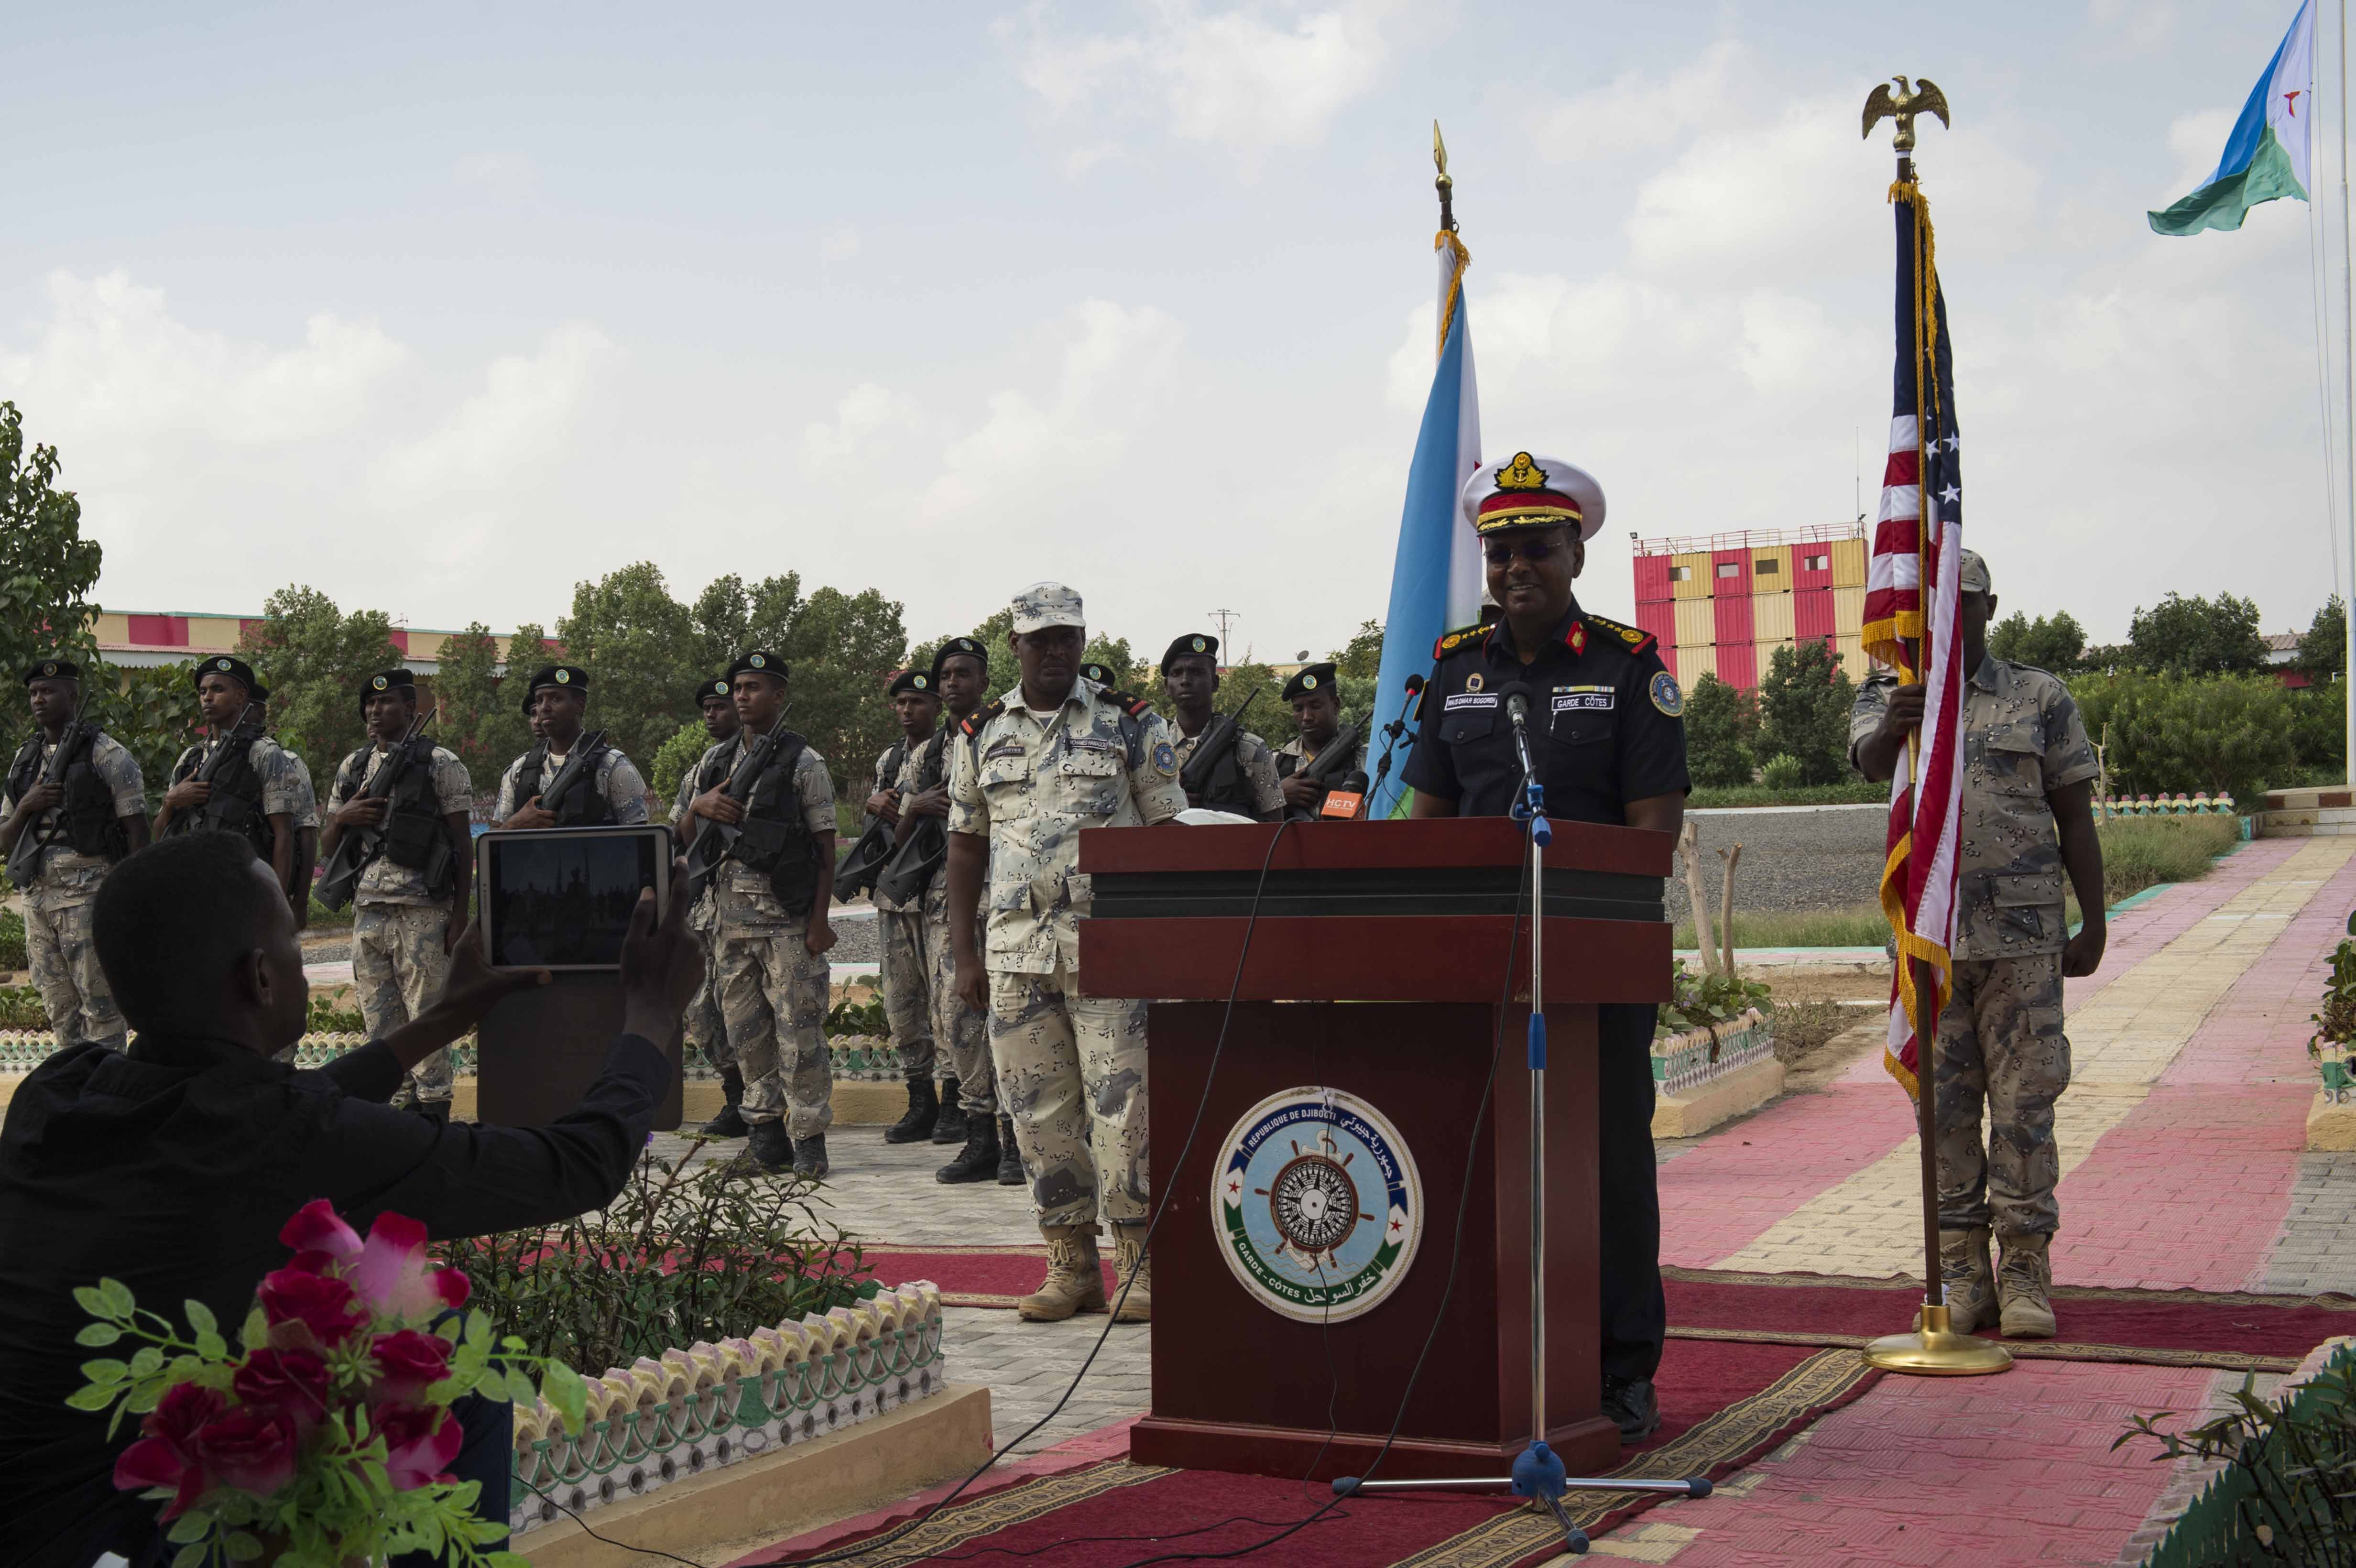 DJIBOUTI, Djibouti (Jan. 31, 2018) Djiboutian Col. Was Omar Bogoreh, commander, Djiboutian Coast Guard, gives remarks during the opening ceremony for exercise Cutlass Express 2018 Jan. 31 in Djibouti, Djibouti. Cutlass Express is designed to improve regional cooperation, maritime domain awareness and information sharing practices to increase capabilities between the U.S., East African and Western Indian Ocean nations. (U.S. Navy photo by Mass Communication Specialist 2nd Class Alyssa Weeks / Released)